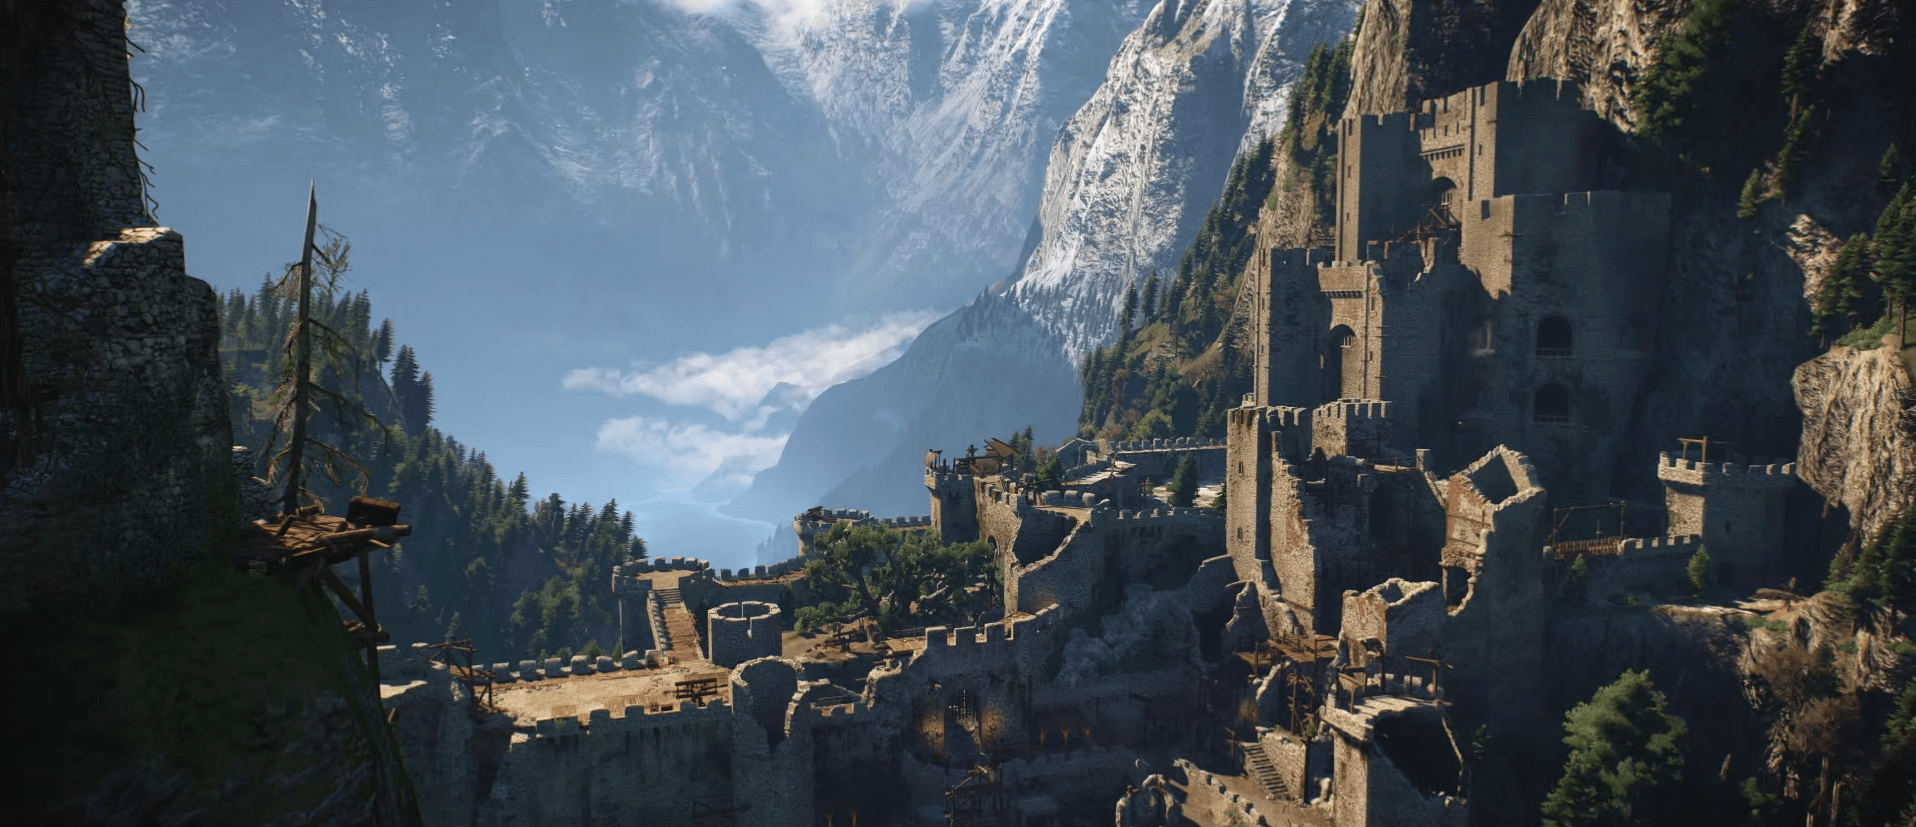 """To progress through the game, you'll need to explore the massive open world, exploring areas and meeting people as you go. """"The Witcher 3"""" claims one of the biggest open worlds ever created for a role-playing game — and the vistas are spectacular. Take a look for yourself ..."""